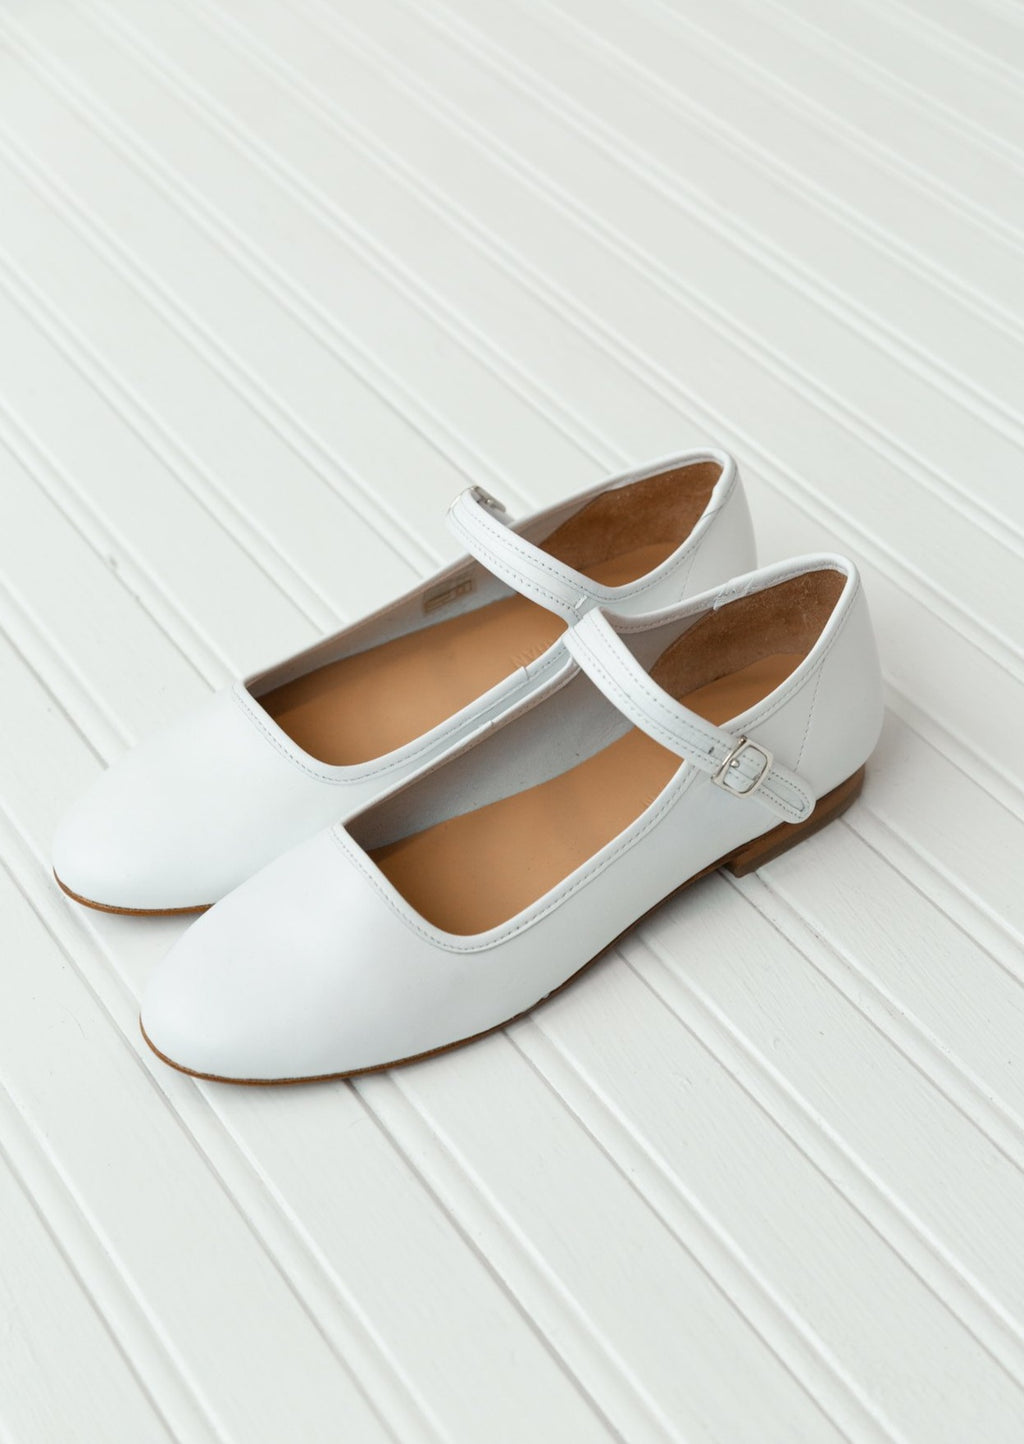 Caron Callahan Ellie Mary Jane | White Nappa Leather